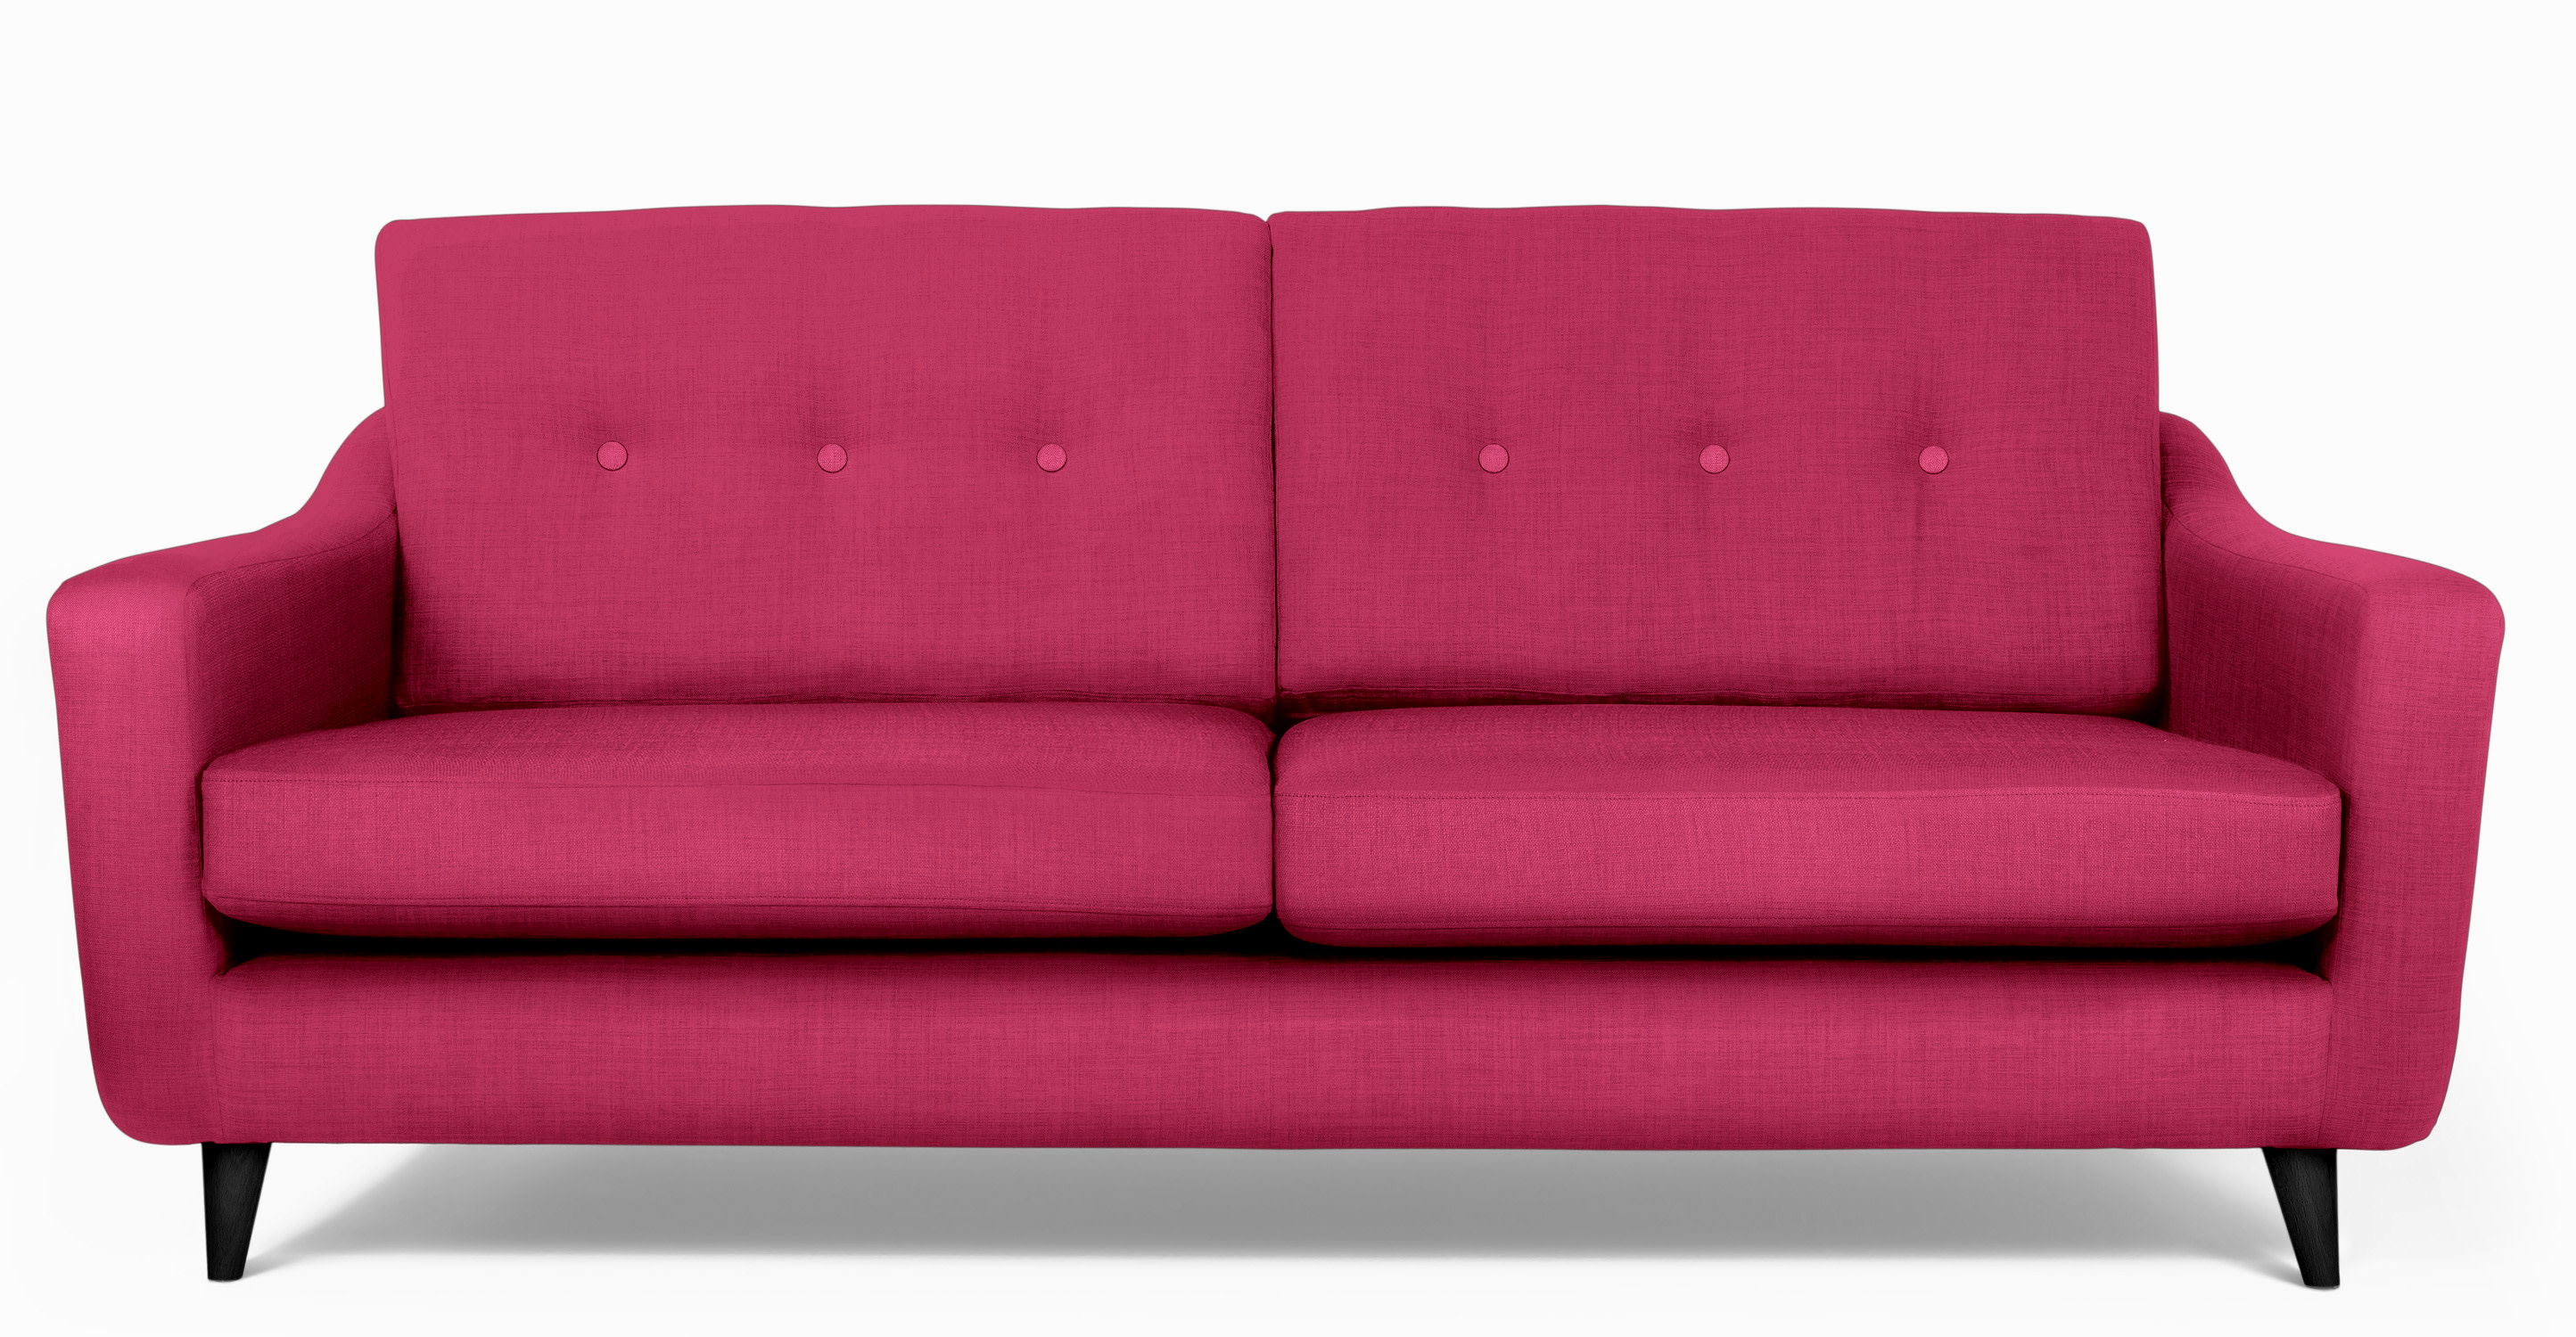 awesome u shaped sectional sofa with chaise inspiration-Unique U Shaped Sectional sofa with Chaise Image